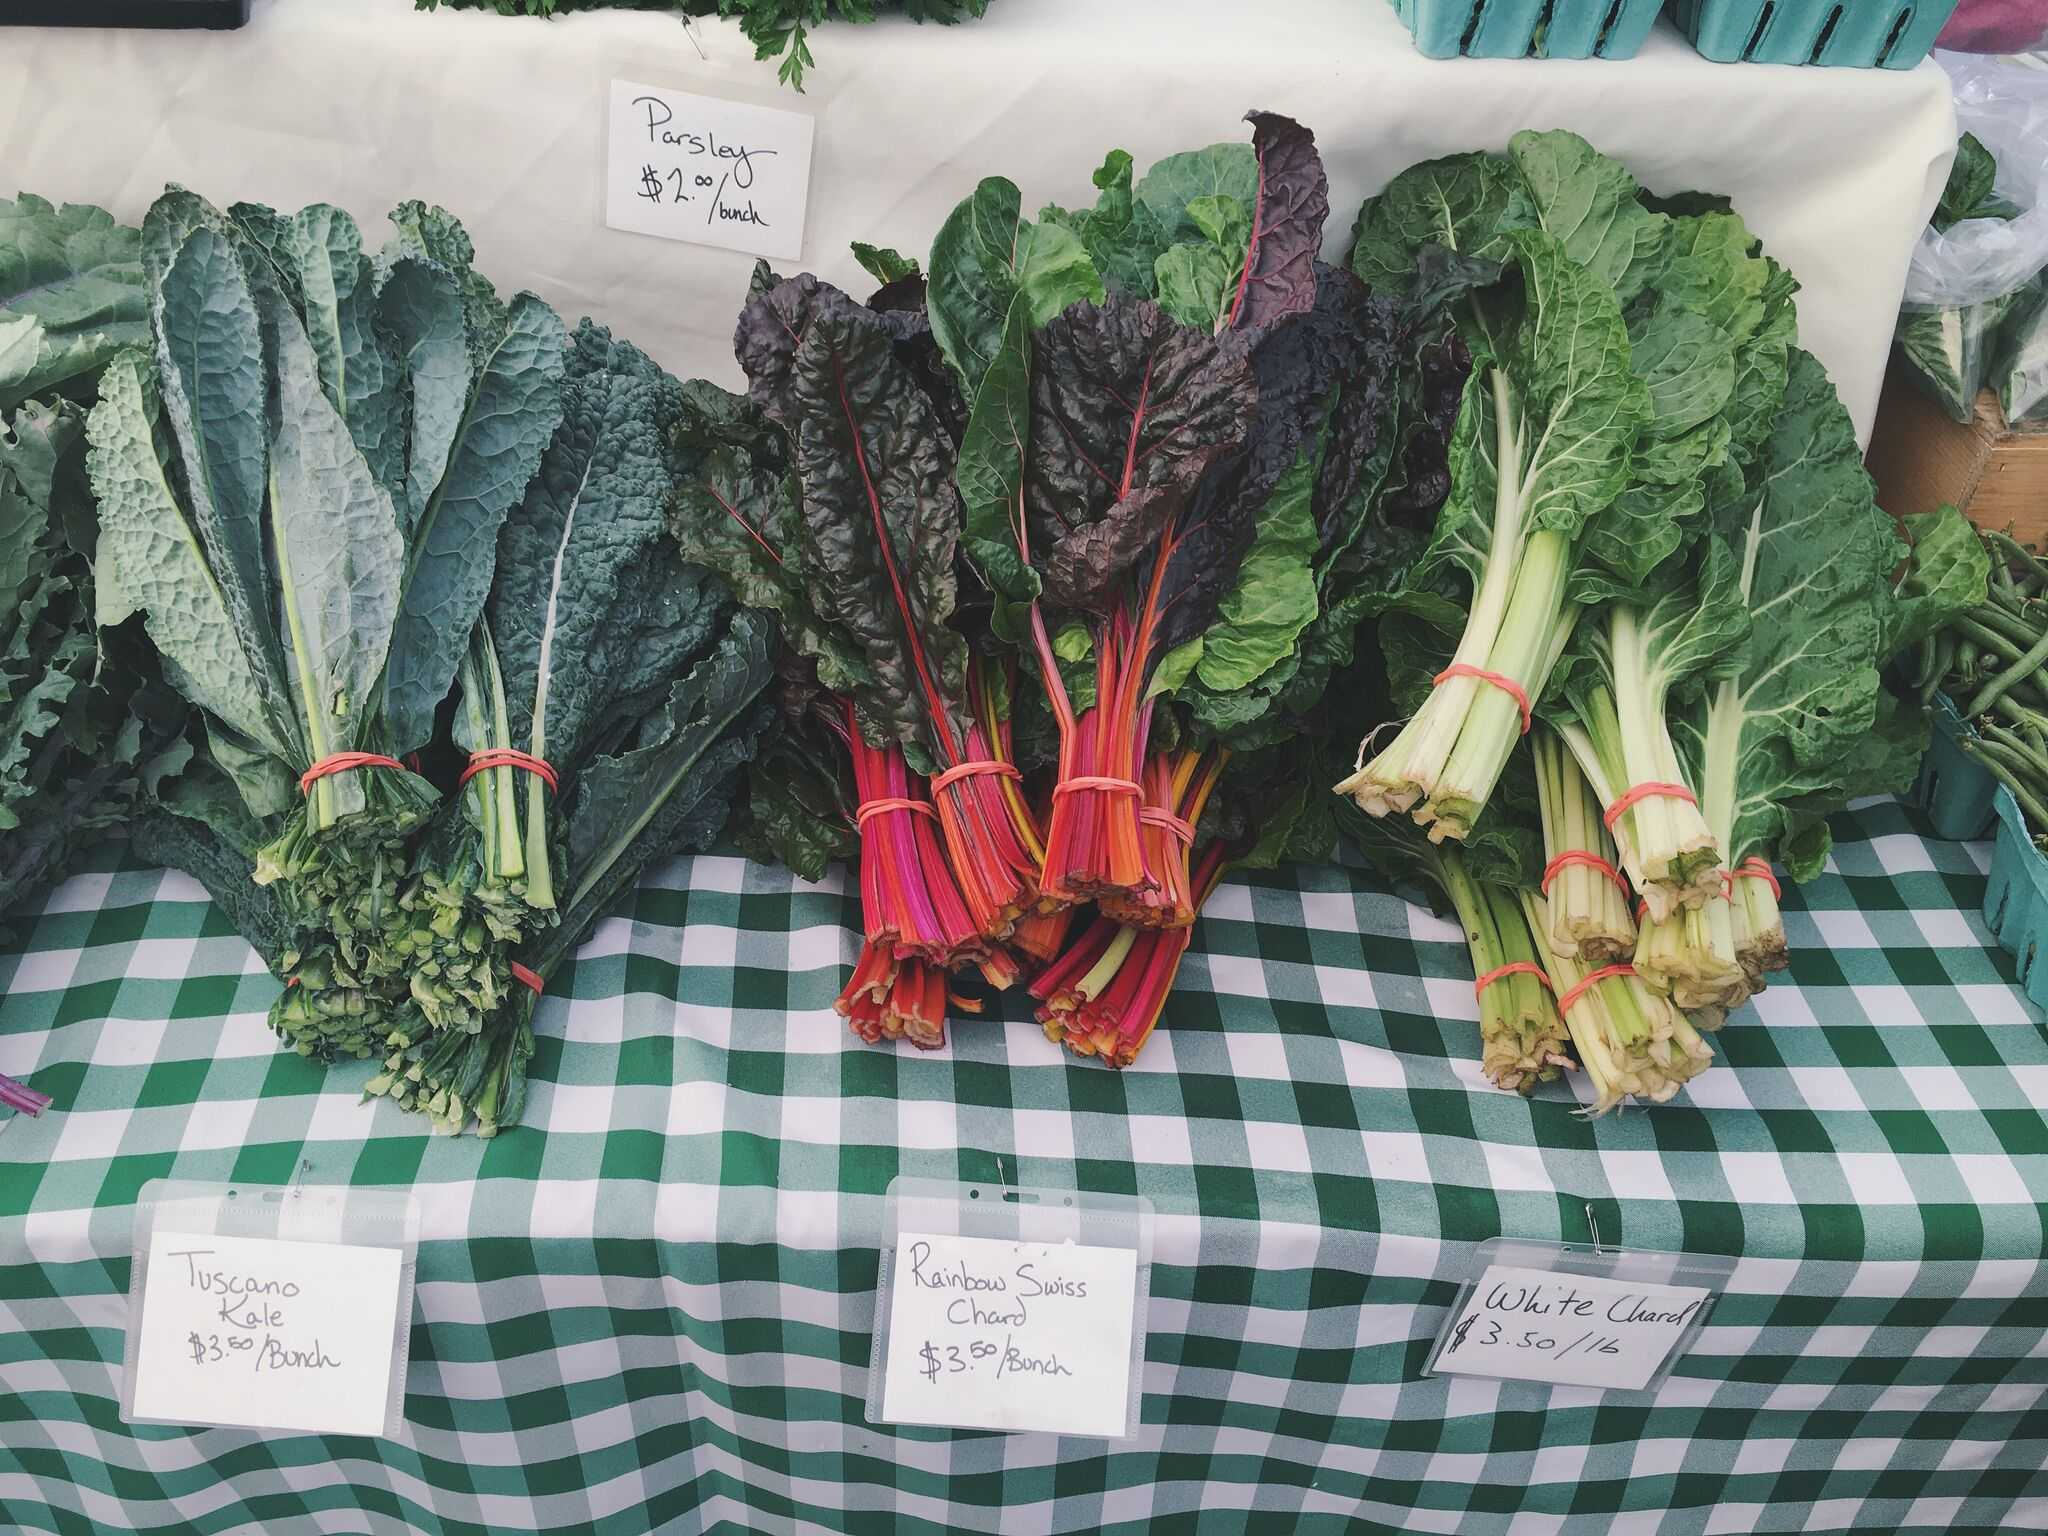 Kale and Swiss Chard at Union Square Greenmarket.